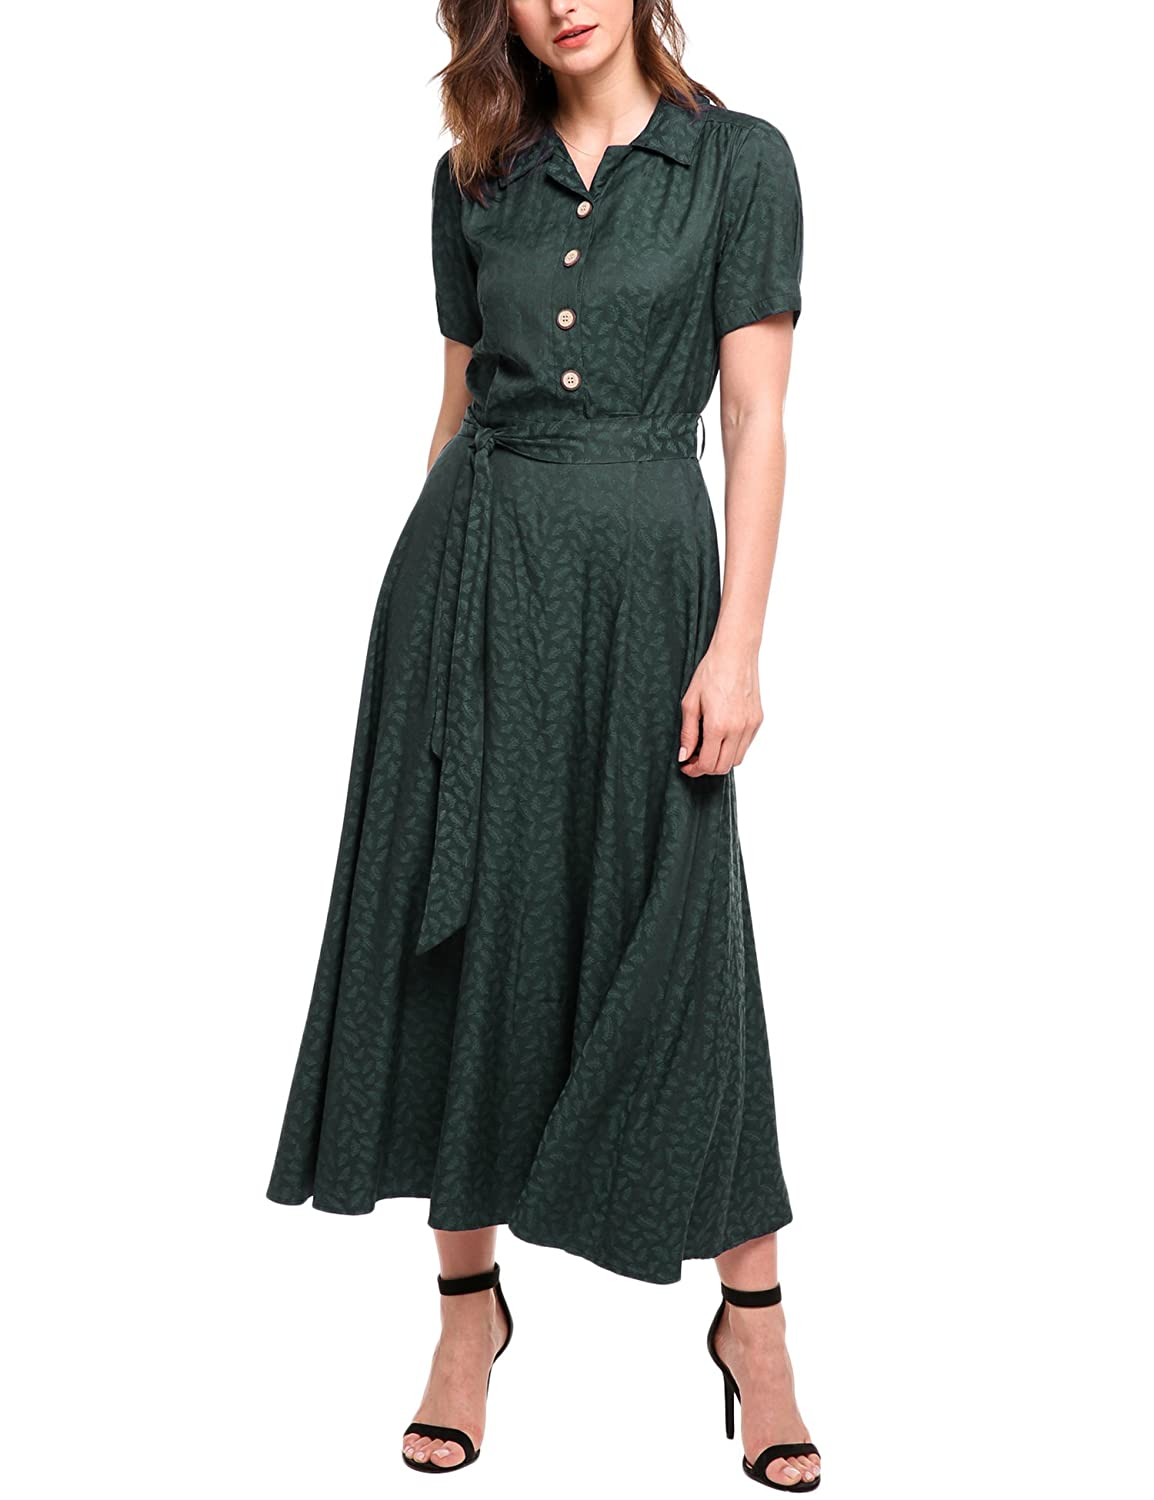 1940s Tea Dresses, Mature, Mrs. Long Sleeve Dresses ACEVOG Women Vintage Style Turn Down Collar Short Sleeve High Waist Maxi Swing Dress with Belt $38.99 AT vintagedancer.com